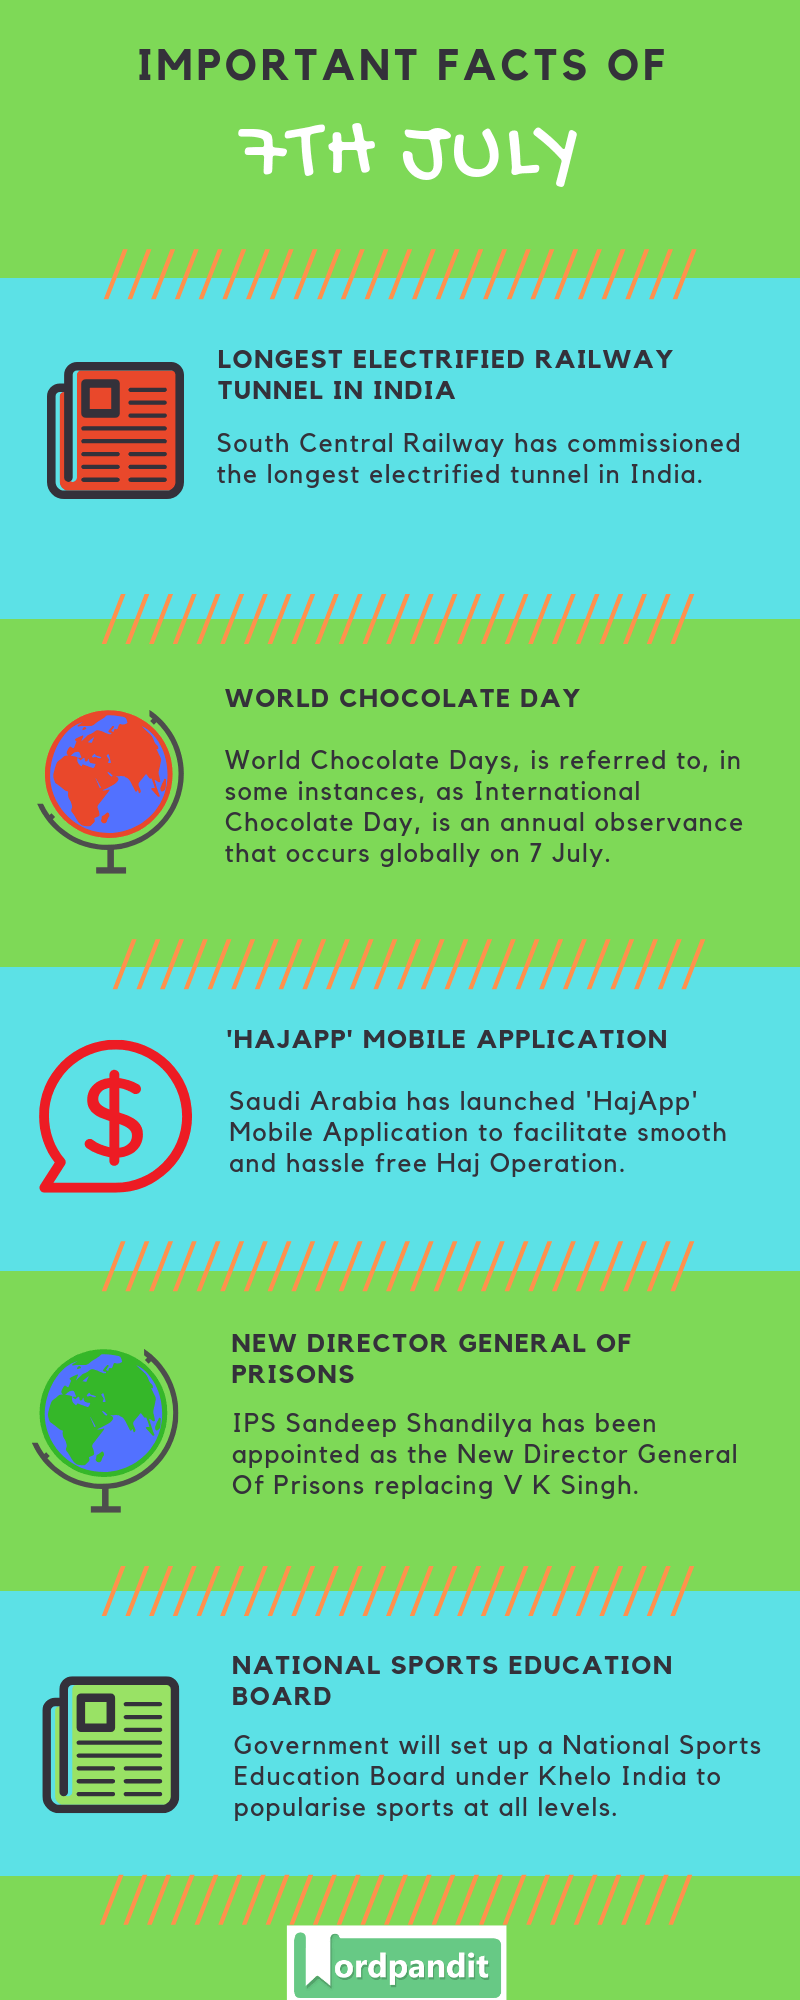 Daily Current Affairs 7 July 2019 Current Affairs Quiz 7 July 2019 Current Affairs Infographic